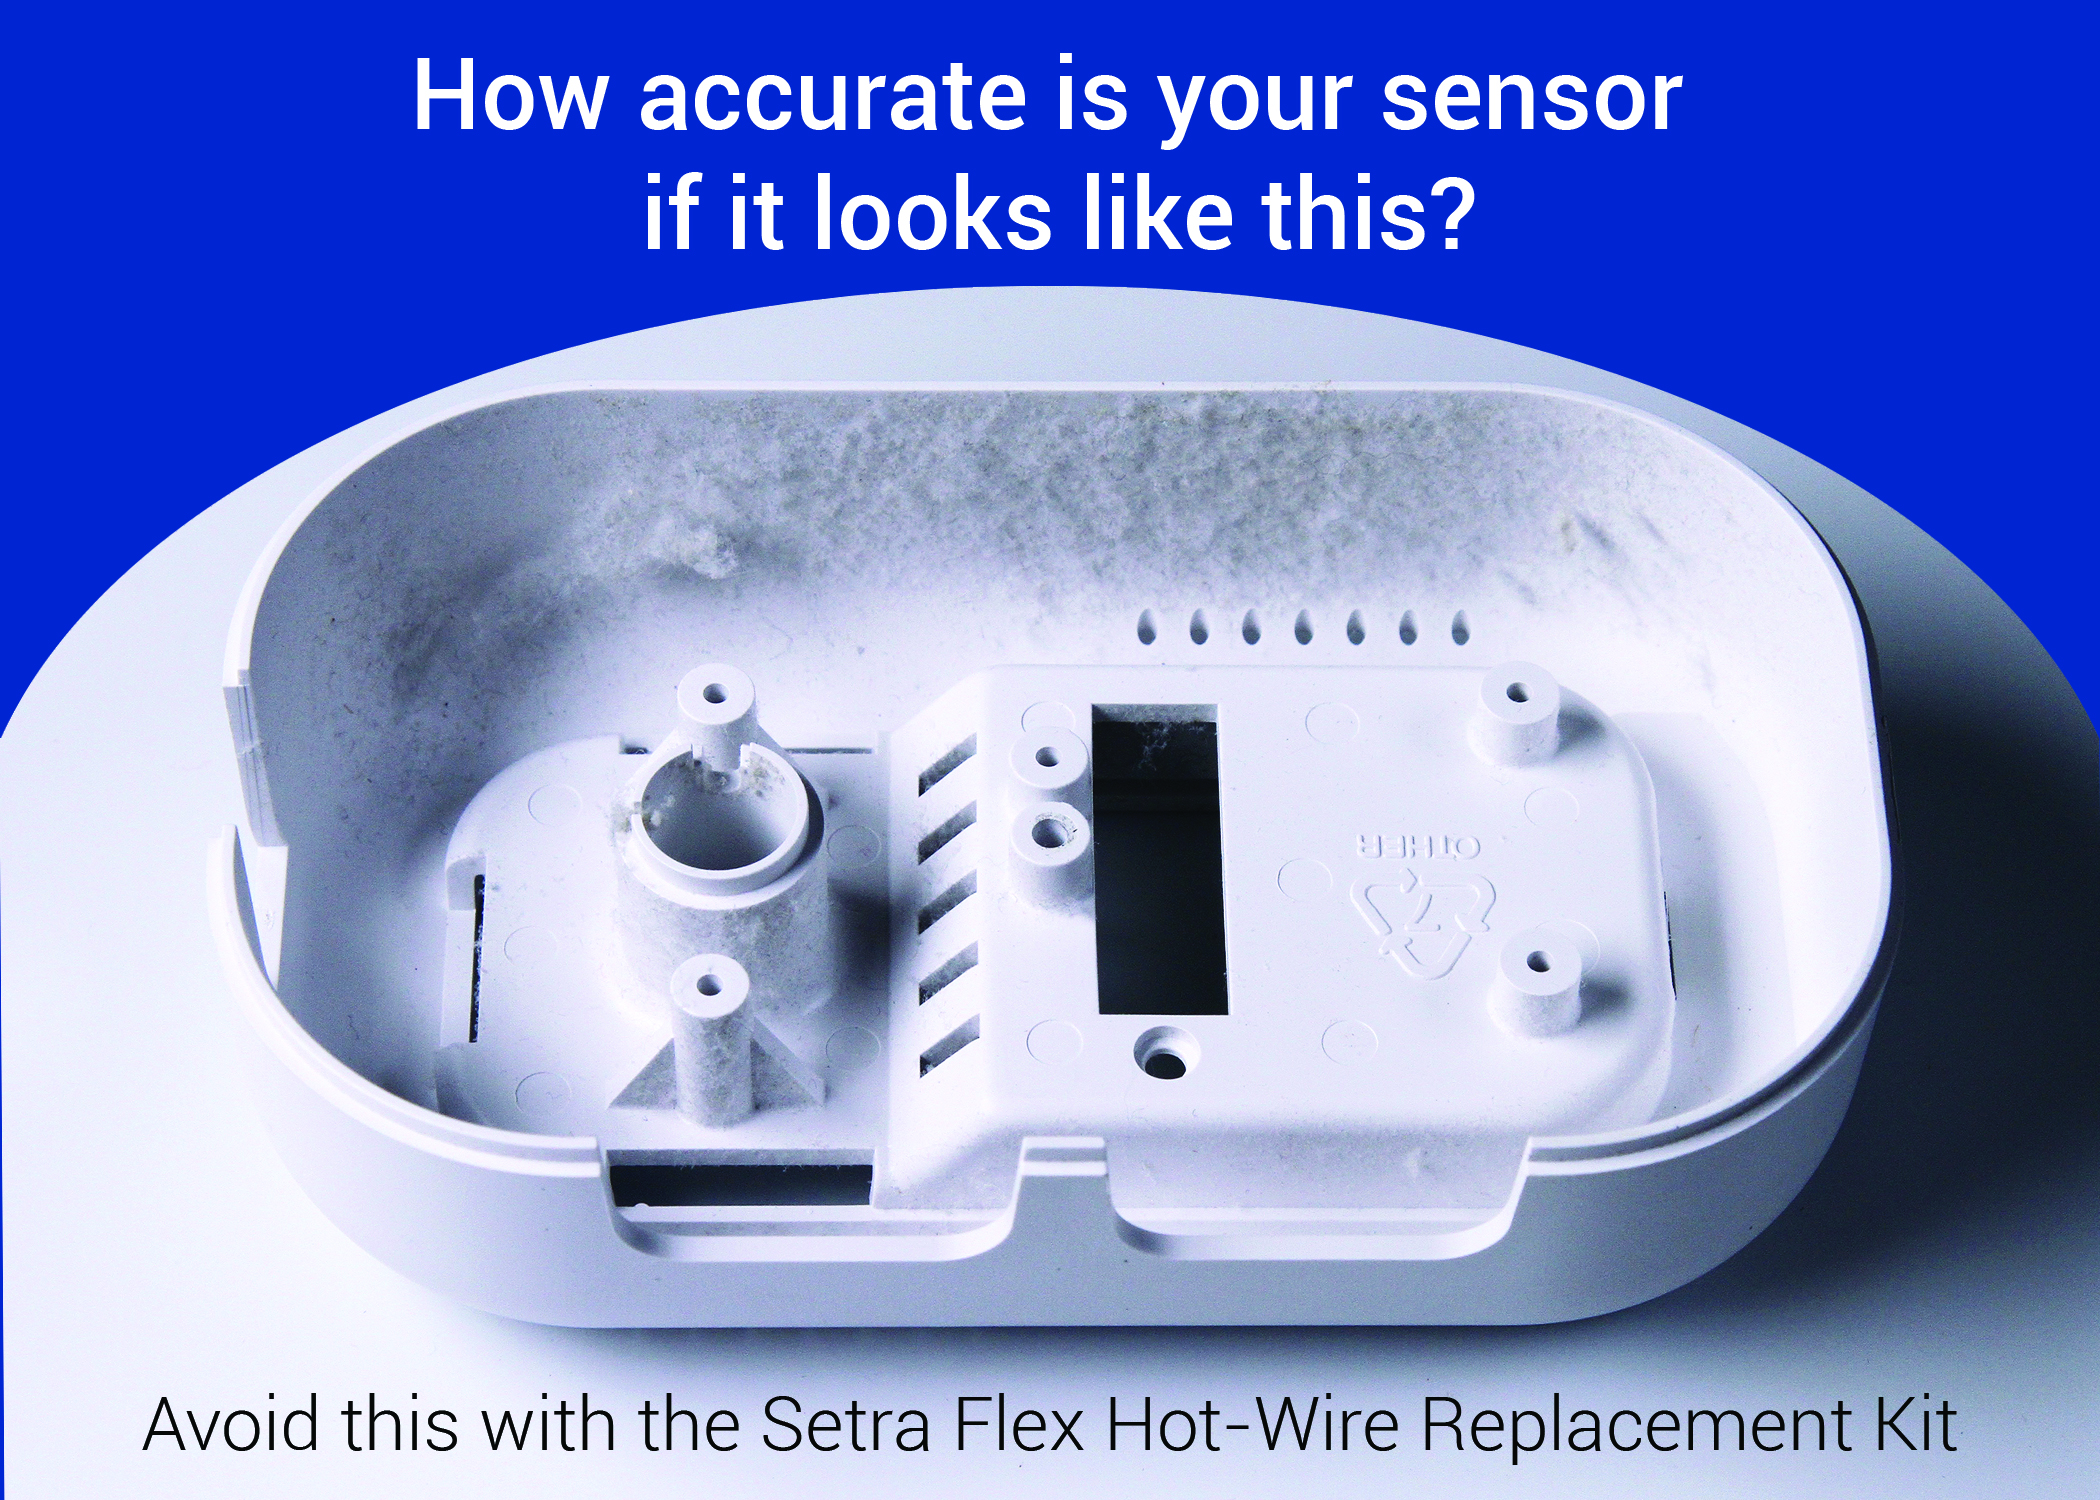 Does your sensor look like this